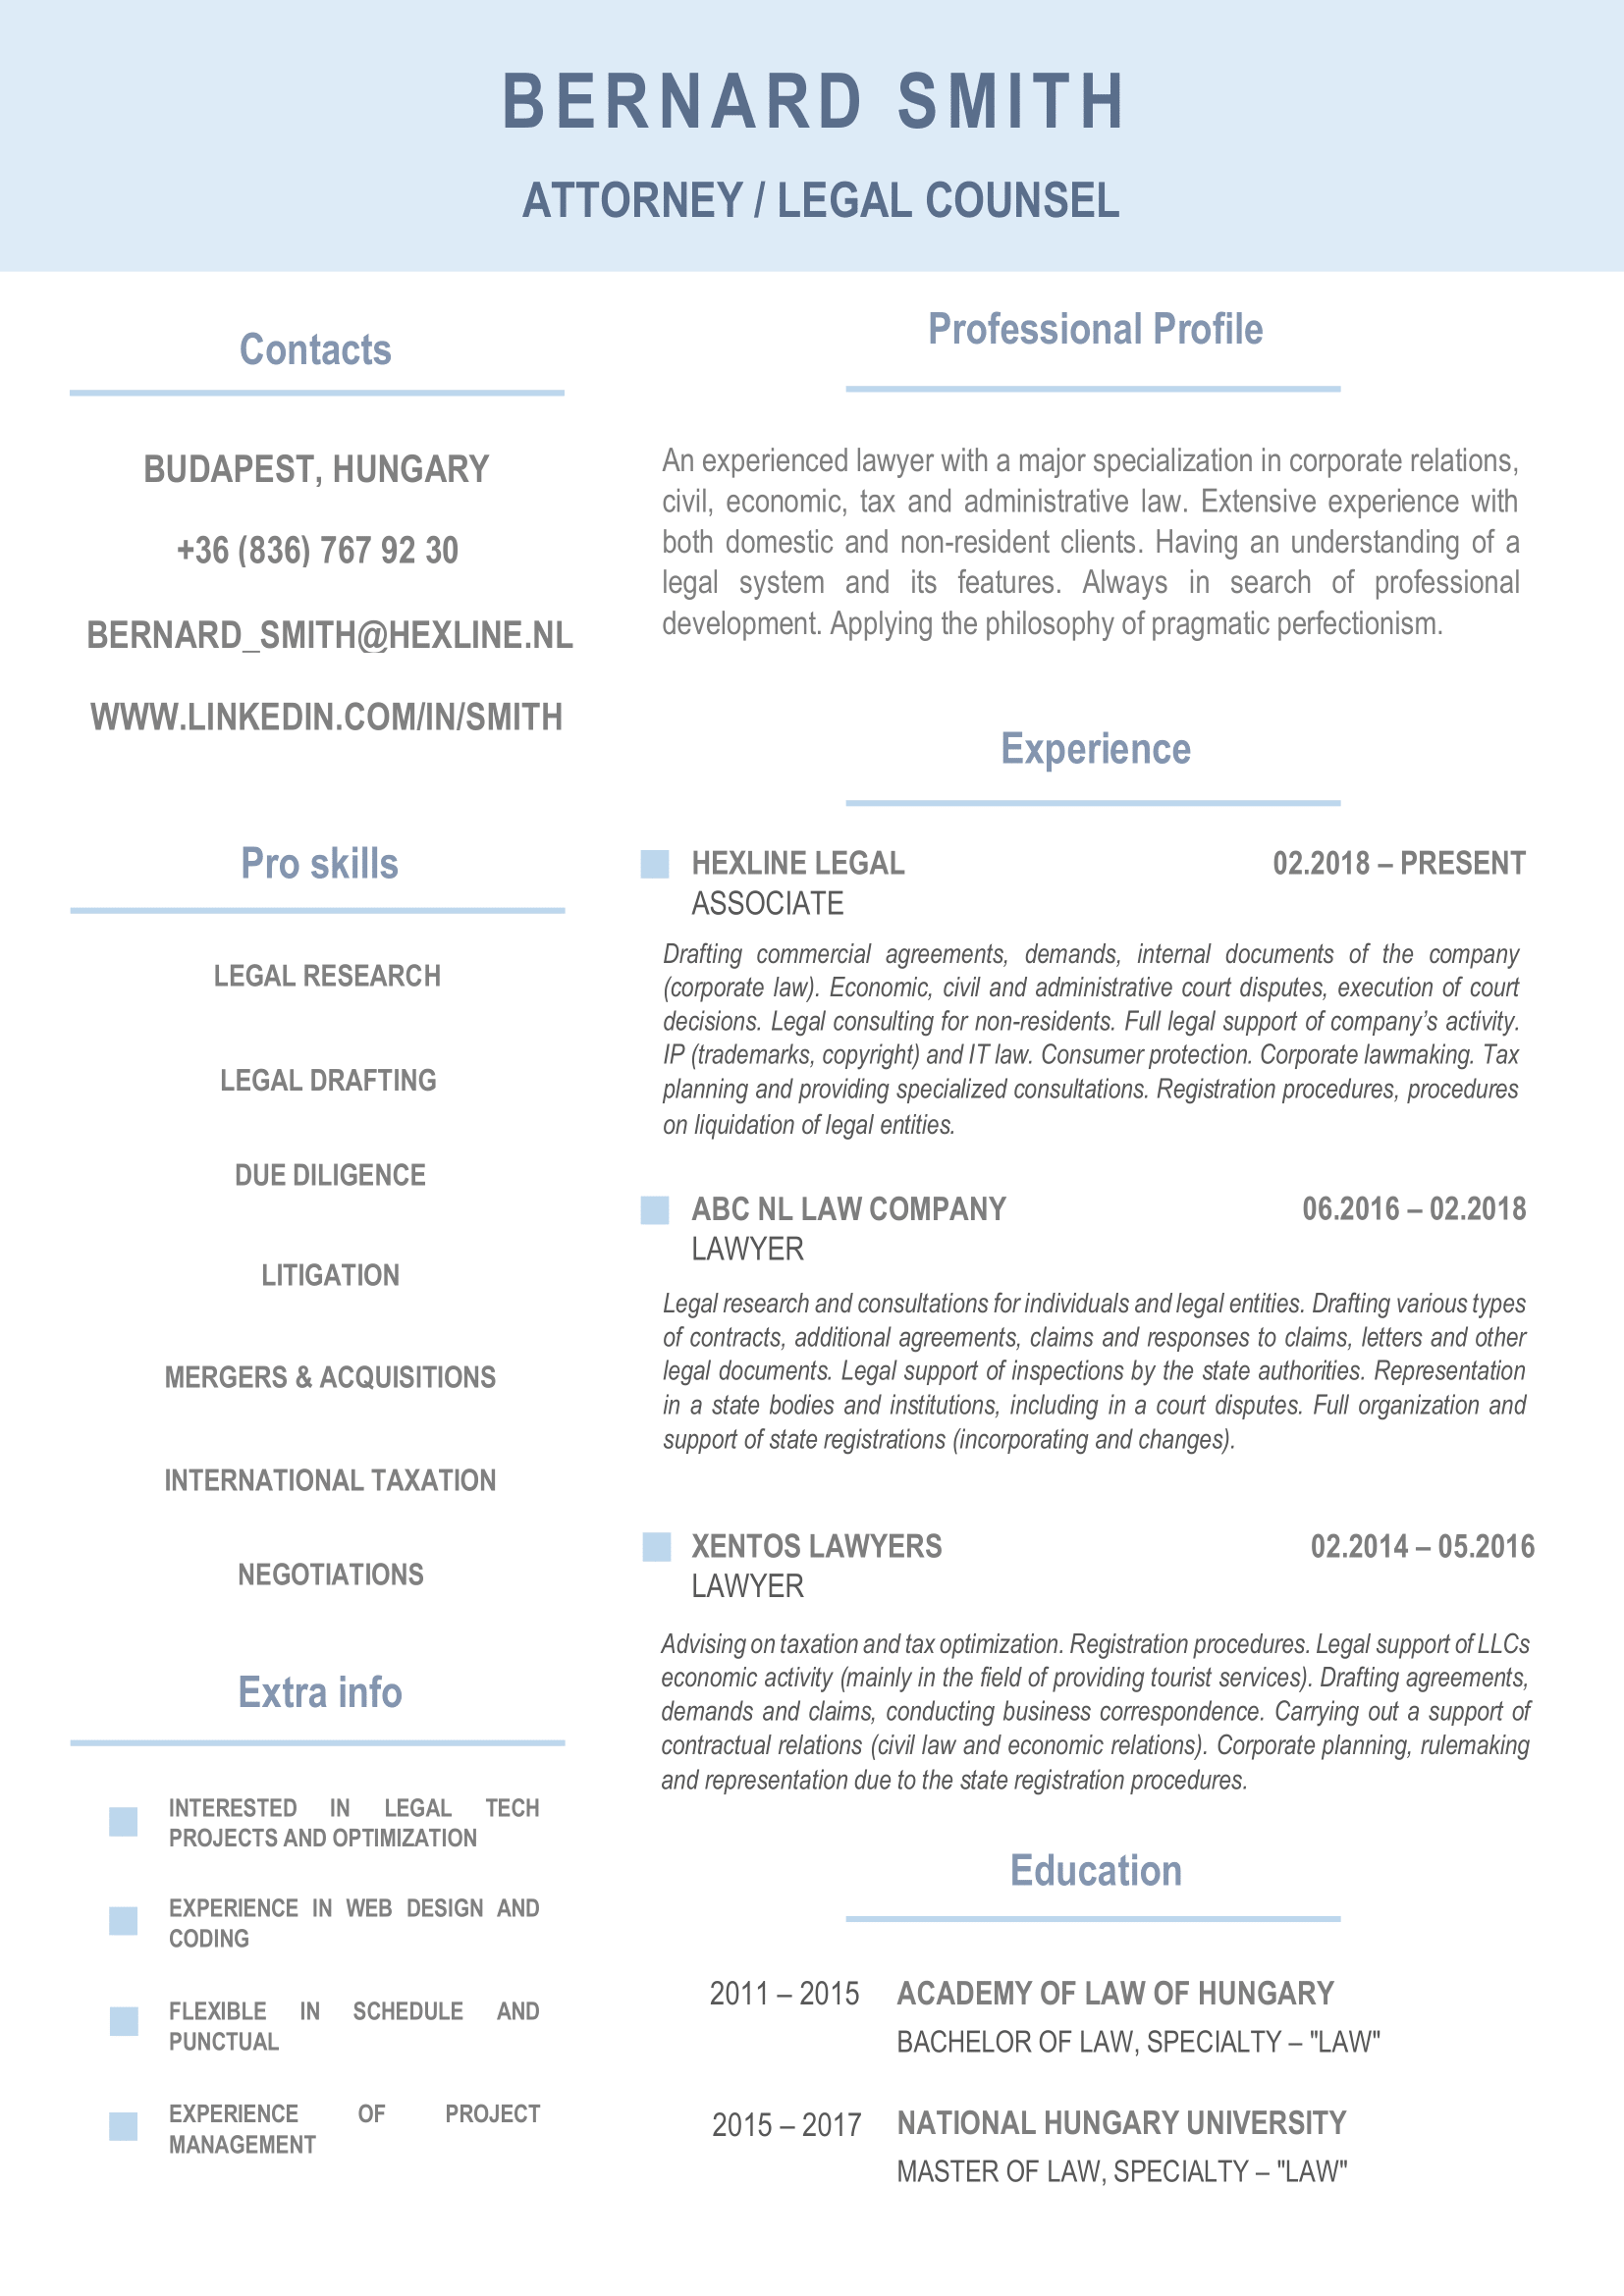 Minimalistic Cv Template For Word With Cover Letter In 2020 Cv Template Resume Template Professional Templates